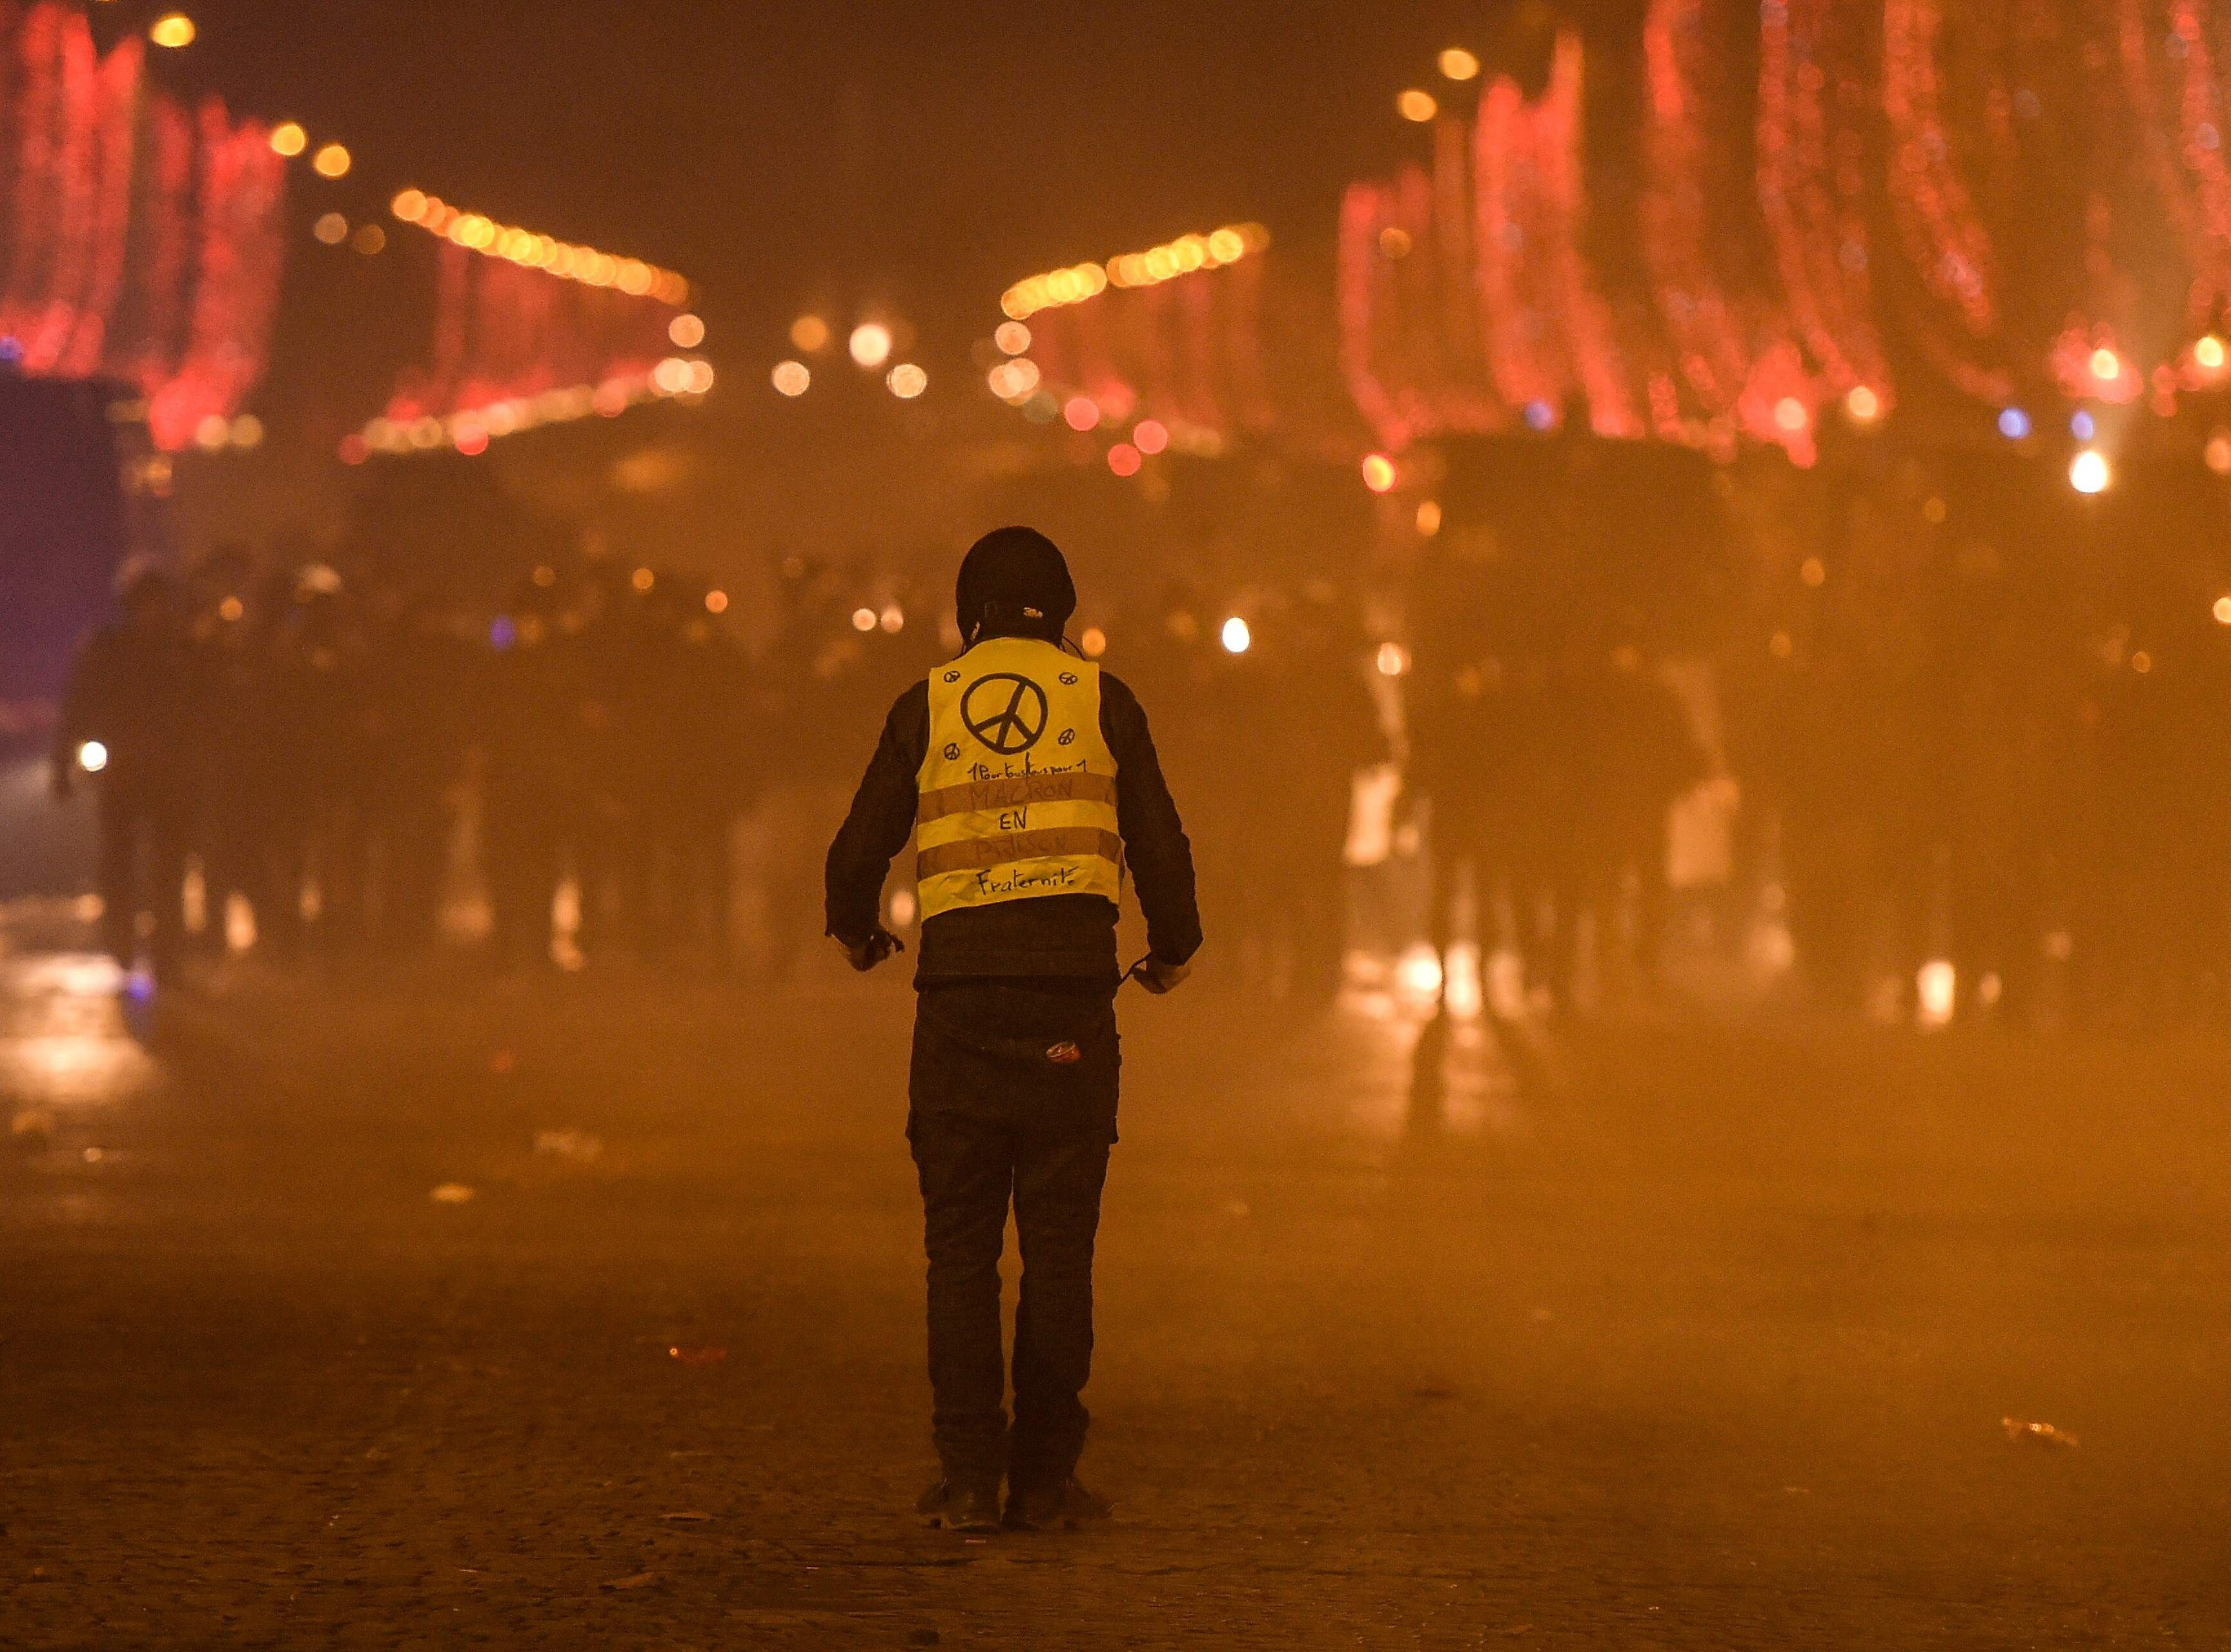 A protester faces riot police during a demonstration of the 'Yellow Vests' (Gilets Jaunes) against rising costs of living on the Champs Elysees avenue in Paris on Dec. 8, 2018.